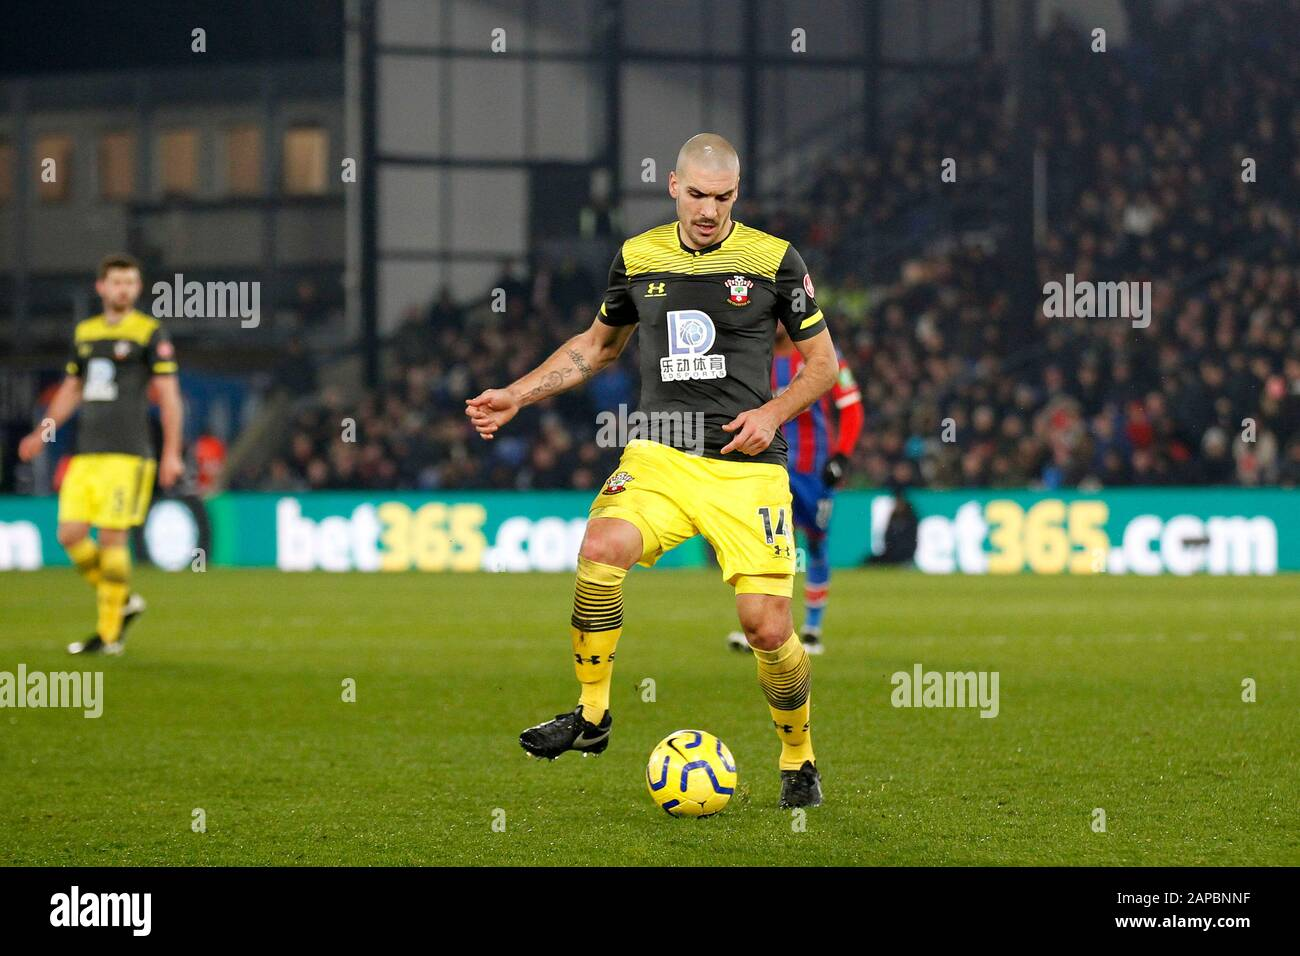 London, UK. 21st Jan, 2020. Oriol Romeu of Southampton during the Premier League match between Crystal Palace and Southampton at Selhurst Park, London, England on 21 January 2020. Photo by Carlton Myrie. Editorial use only, license required for commercial use. No use in betting, games or a single club/league/player publications. Credit: UK Sports Pics Ltd/Alamy Live News Stock Photo